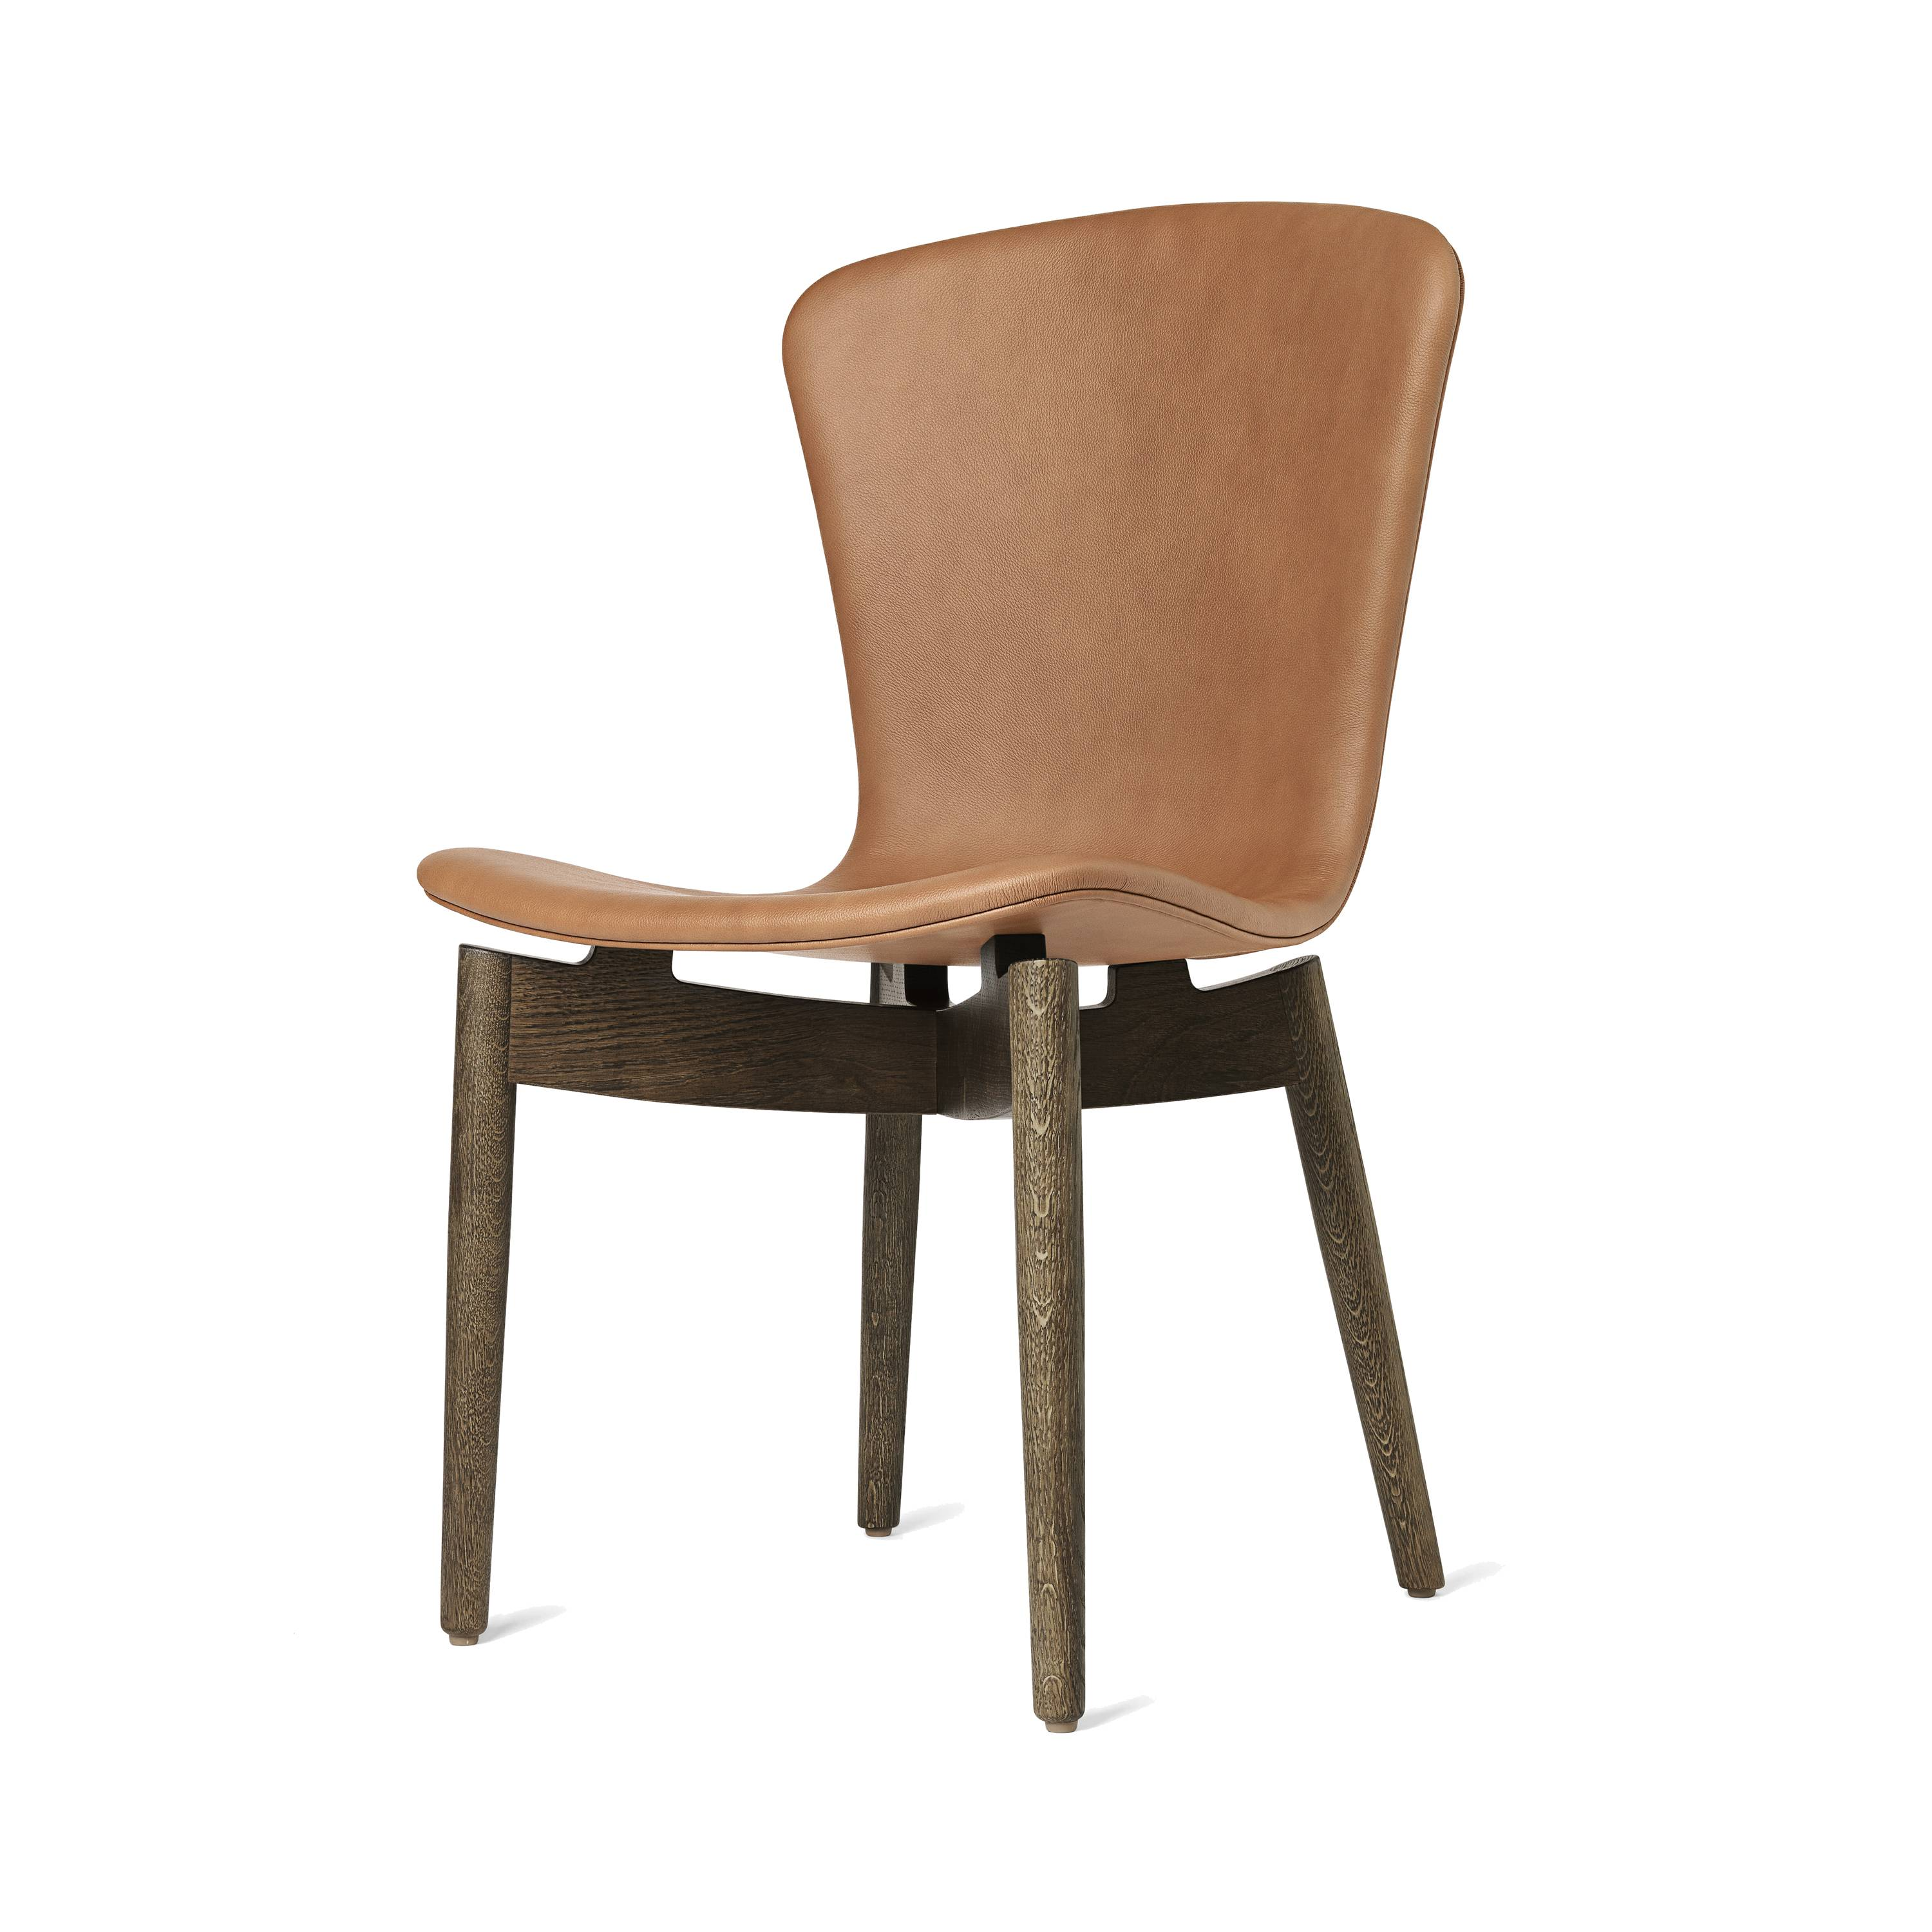 Shell Dining Chair: Sirka Grey Oak + Ultra Brandy Leather